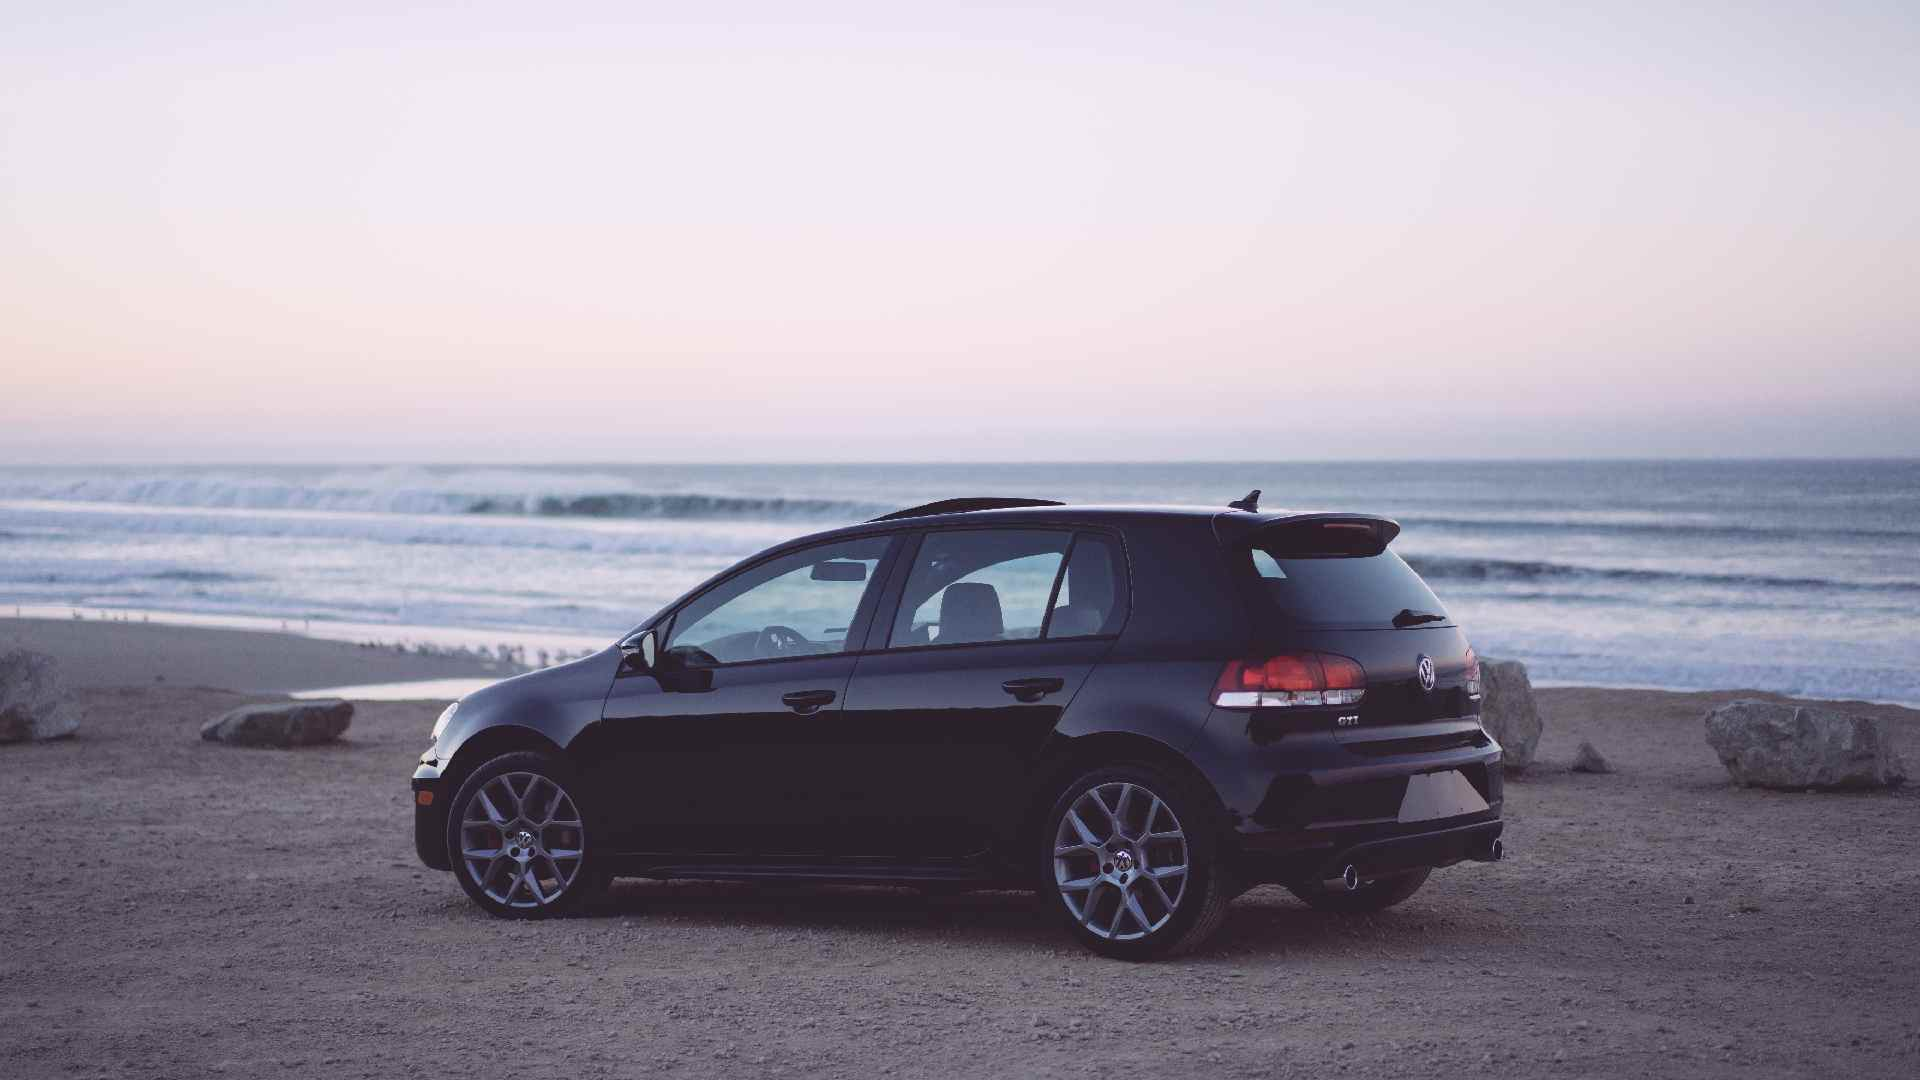 Preparing the Car for a Trip to the Sea [Guide]